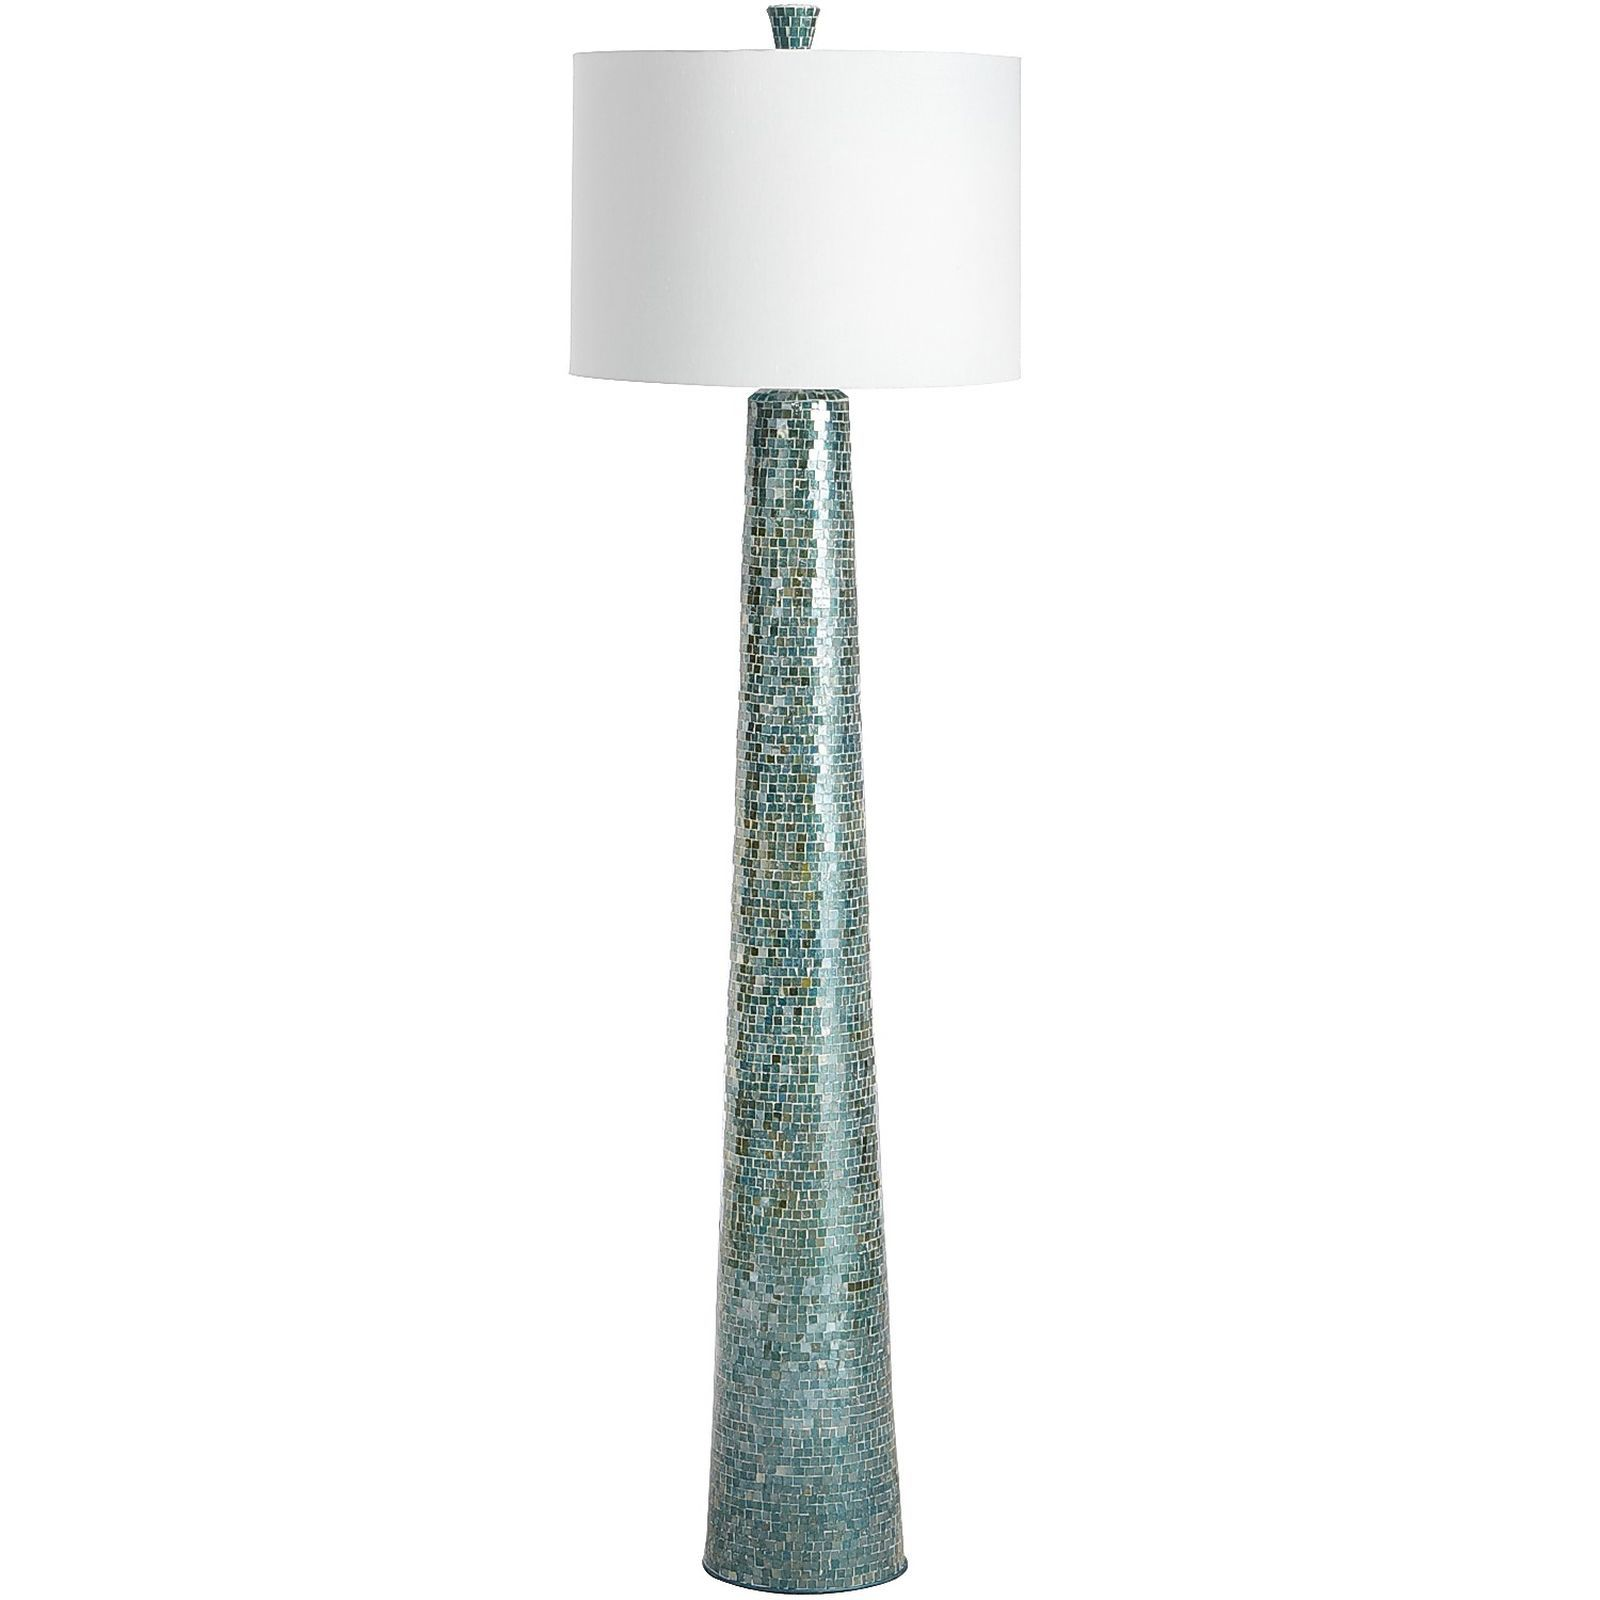 Oceans mosaic floor lamp also pier imports neutral color scheme